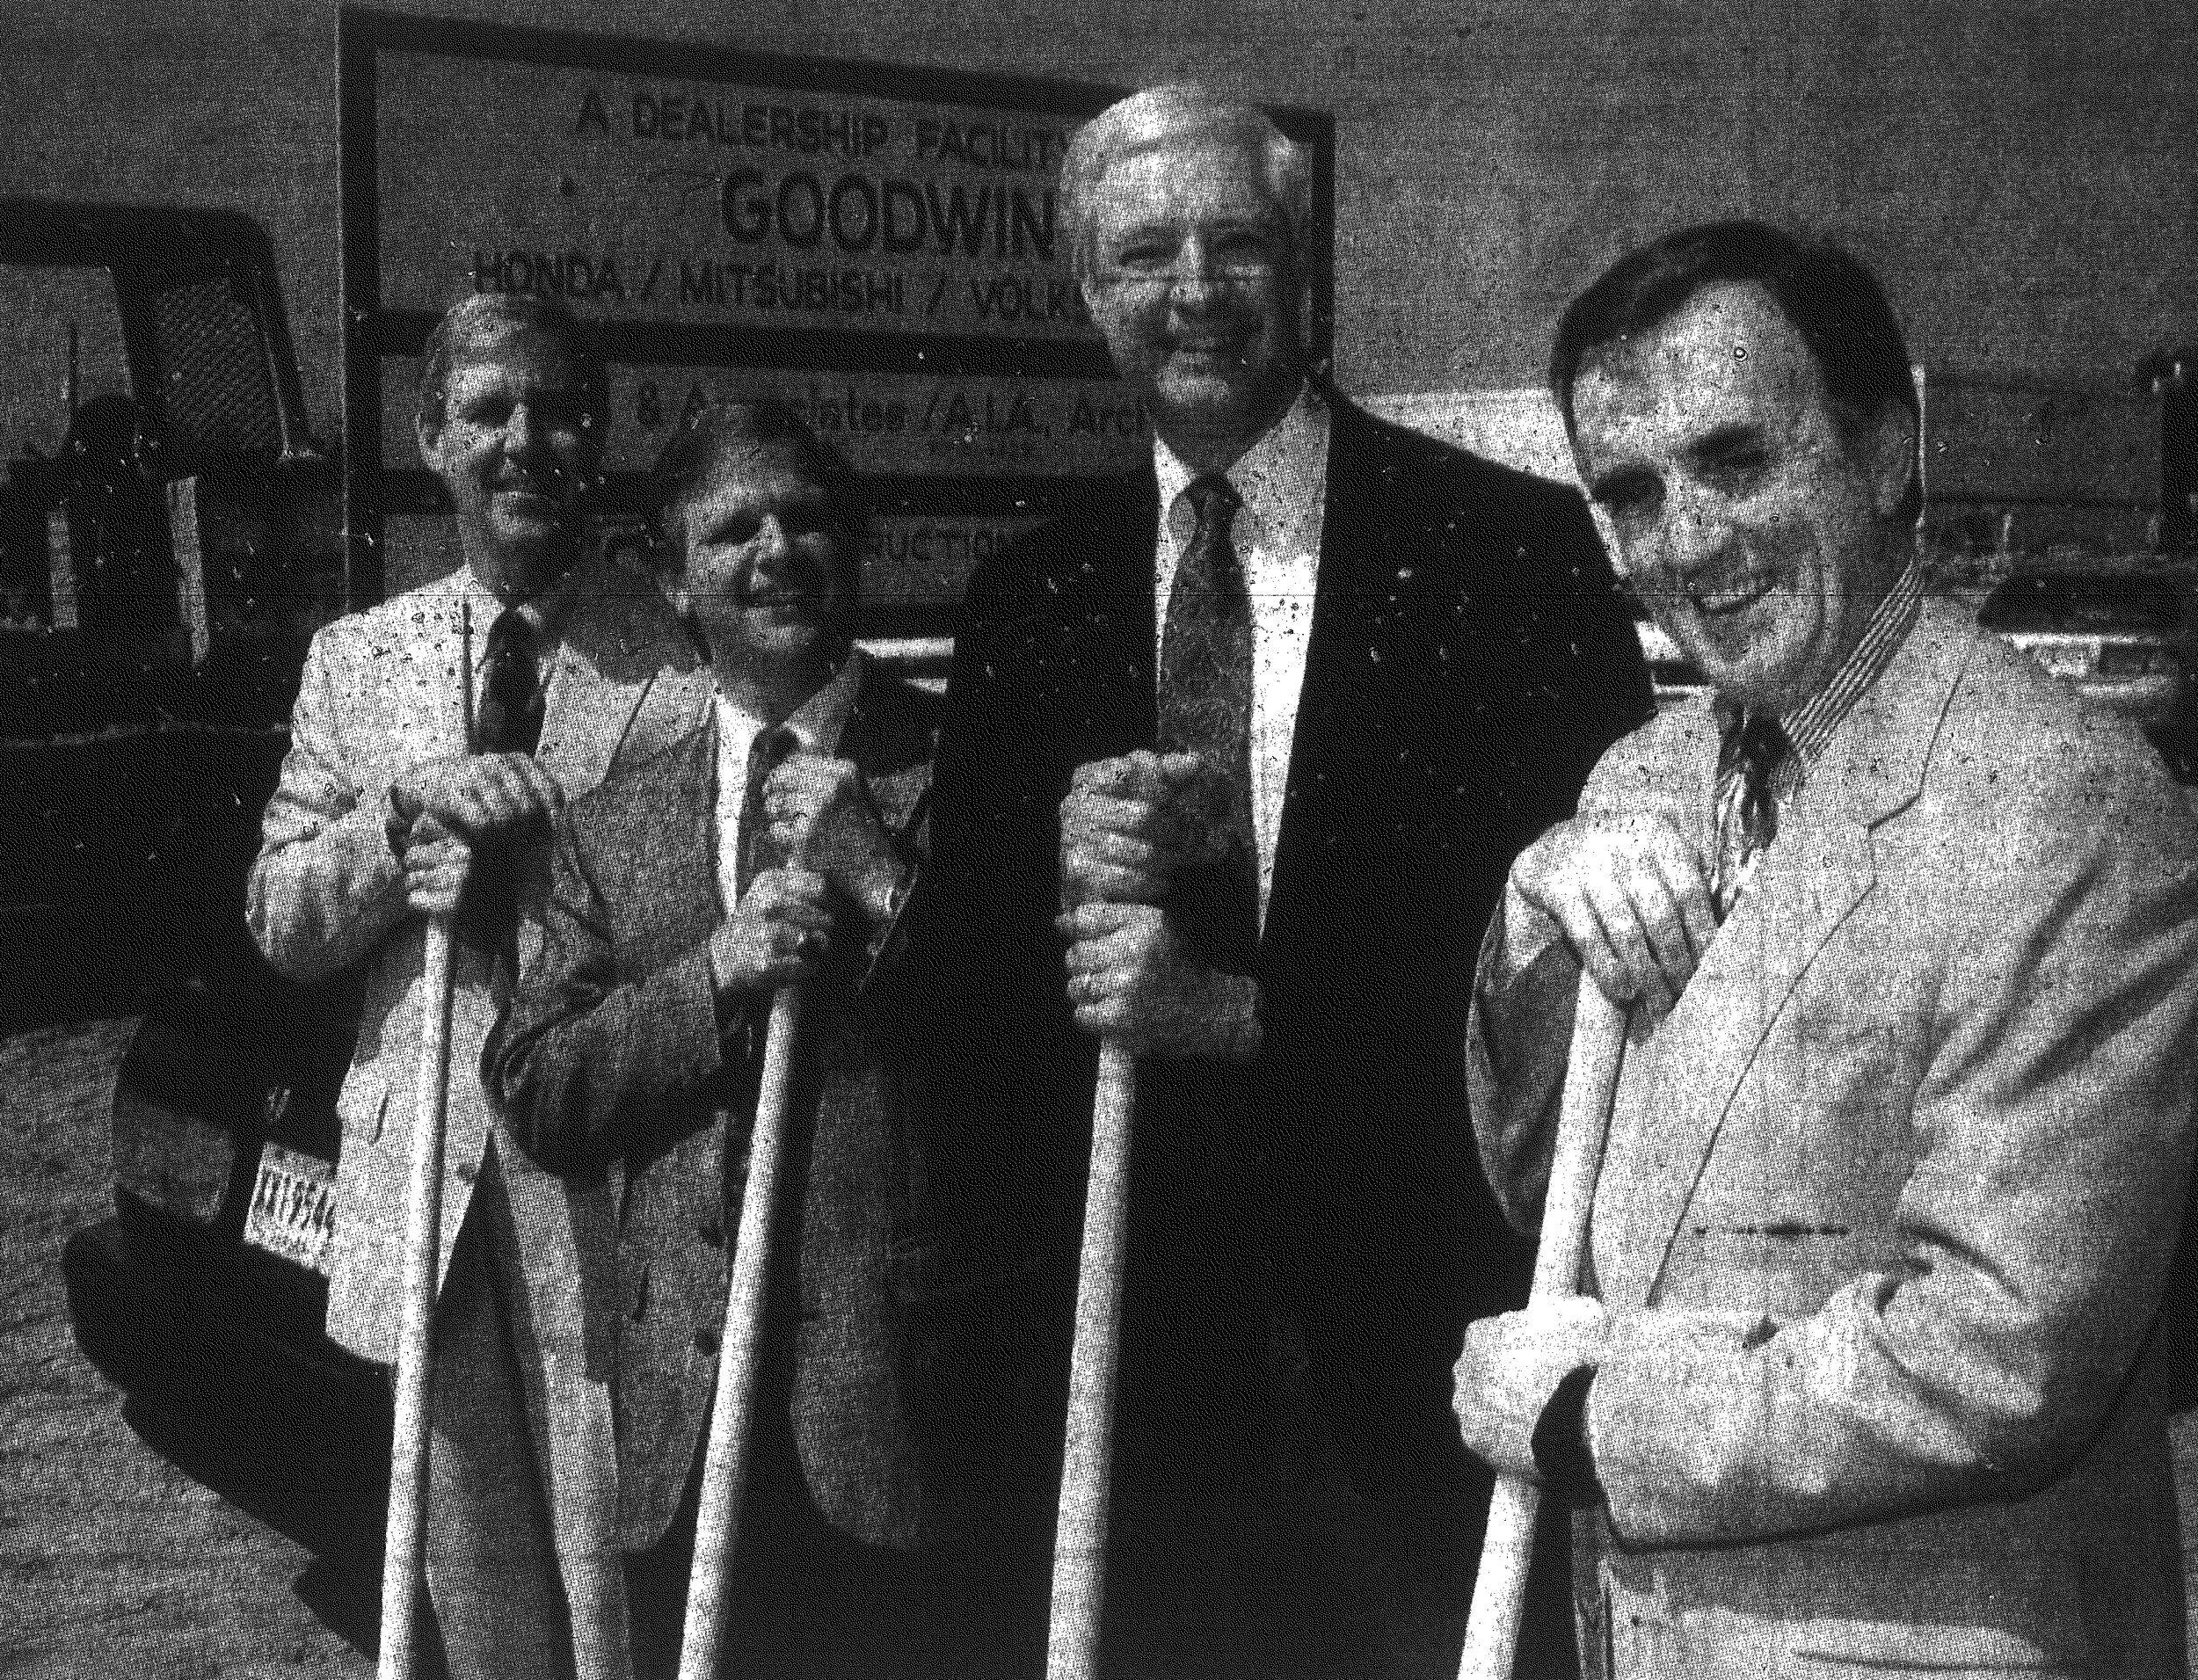 1992 - From left, Sumter Mayor Steve Creech, Keith Hamm, Cliff Goodwin and Sumter County Council Chairman Joe Davis break ground on the location of the new Goodwin dealership on U.S. 76/378.